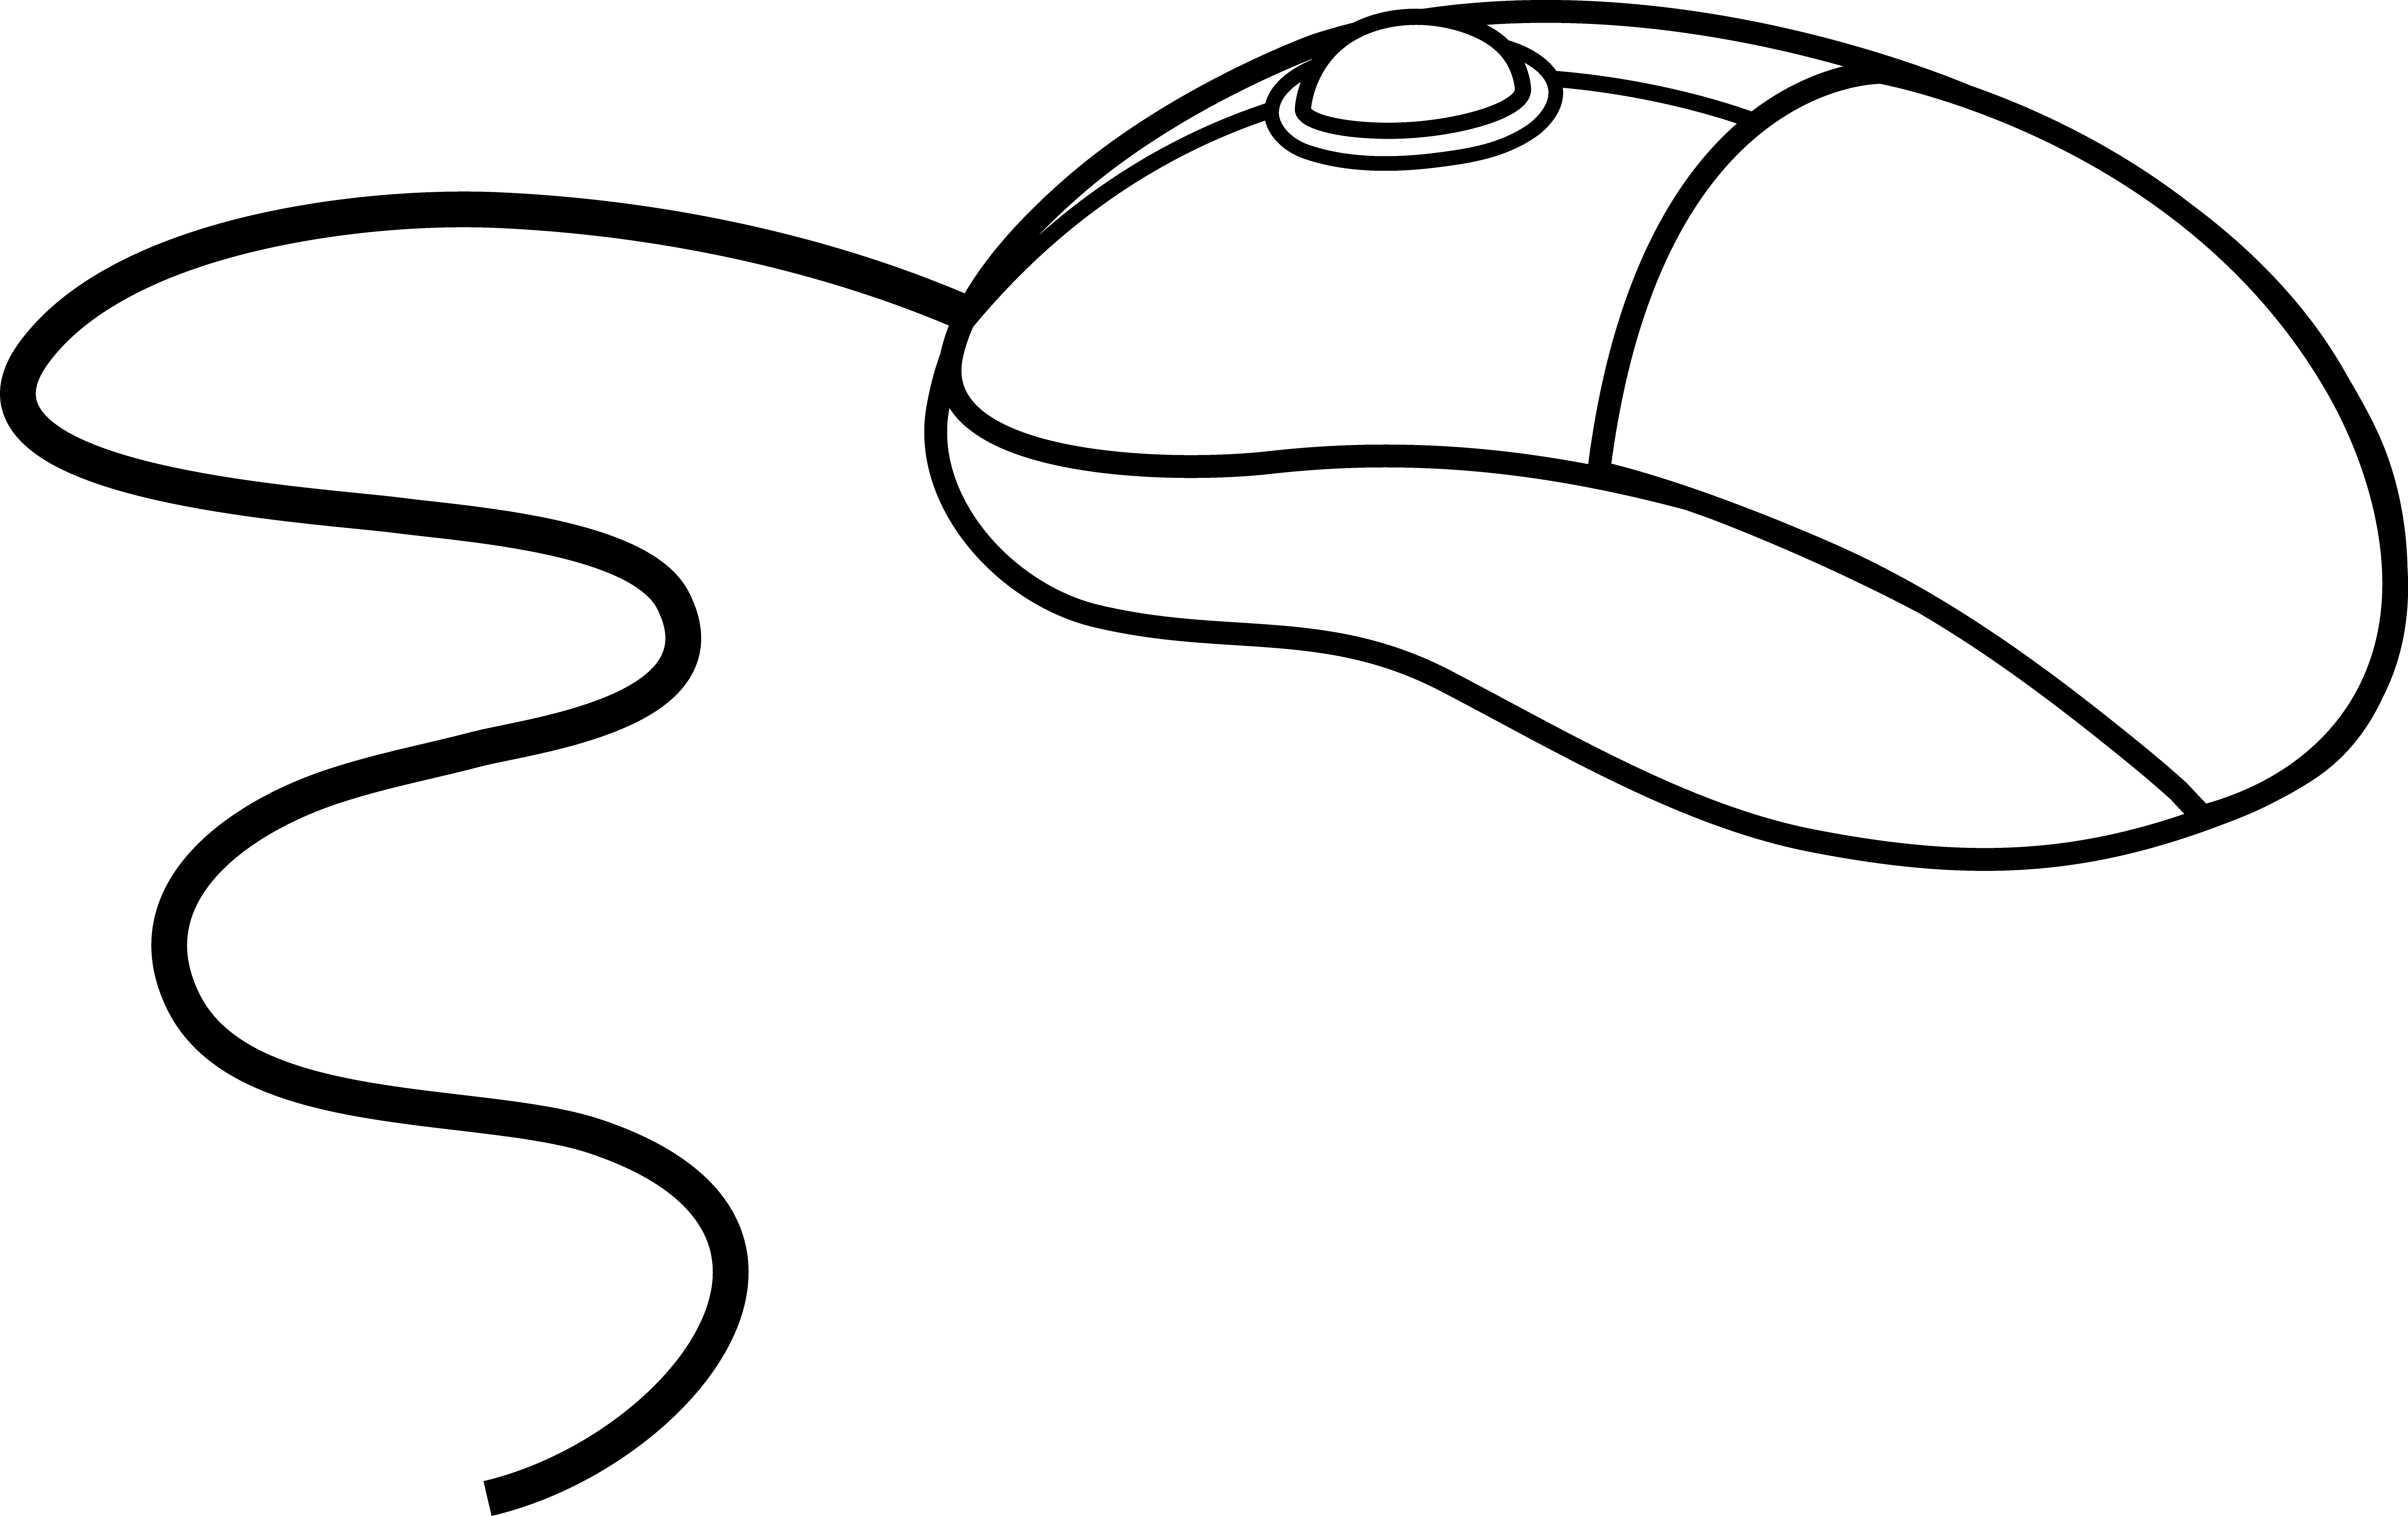 Drawn rodent comp Mouse and BBCpersian7 keyboard Keyboard